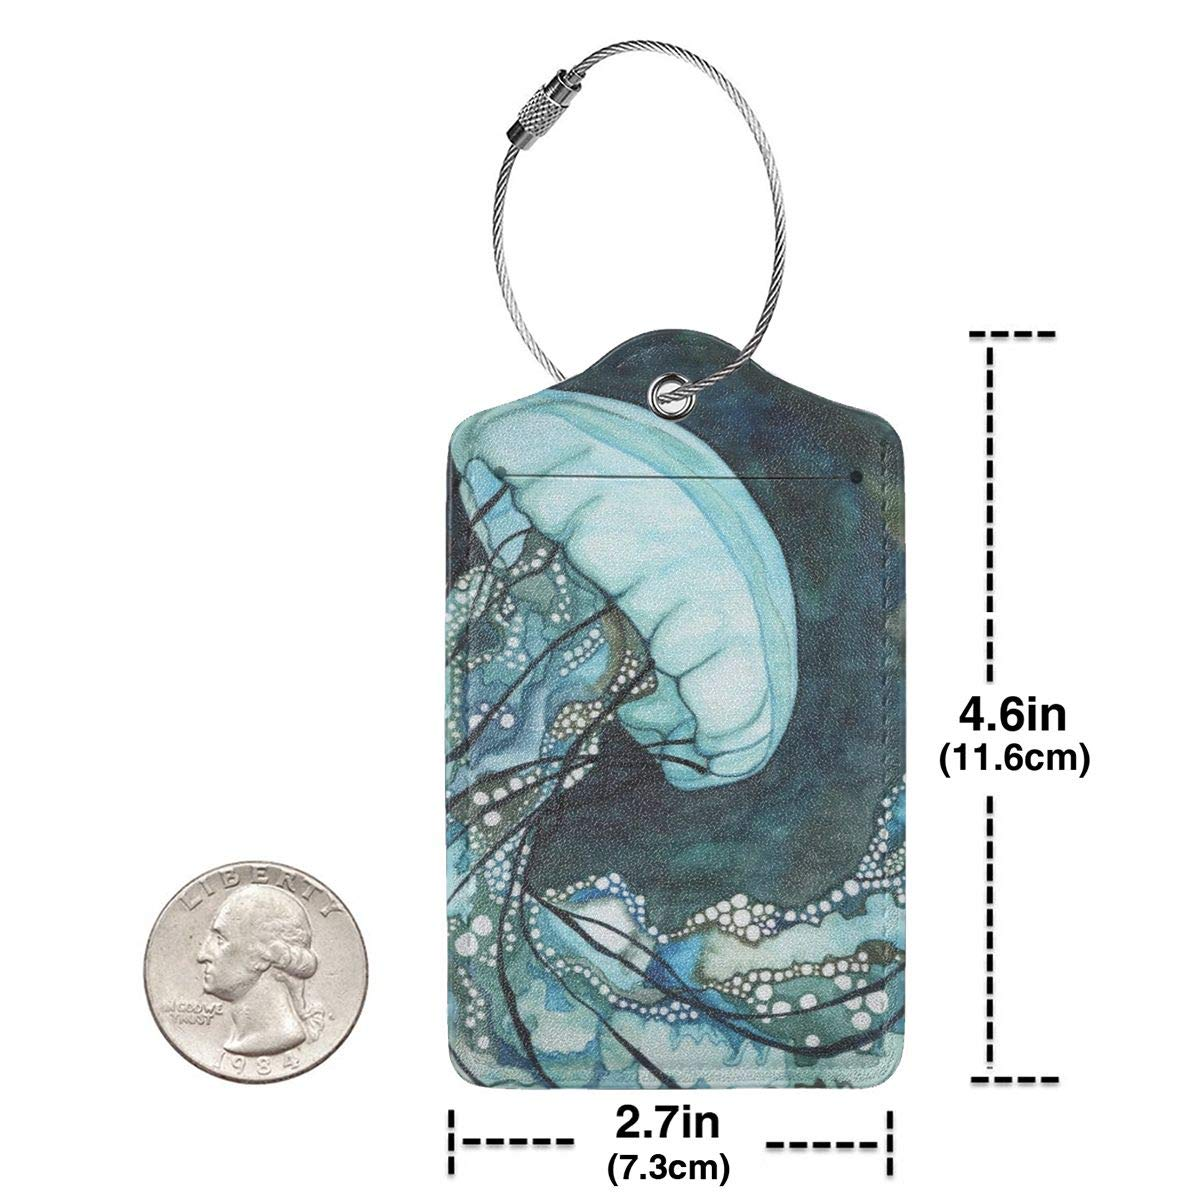 Luggage Tags PU Leather Suitcase Card Tag With Stainless Steel Loop Travel Baggage Handbag Tag Labels Travel Accessories Marine Painting With Mixed Media set of 4